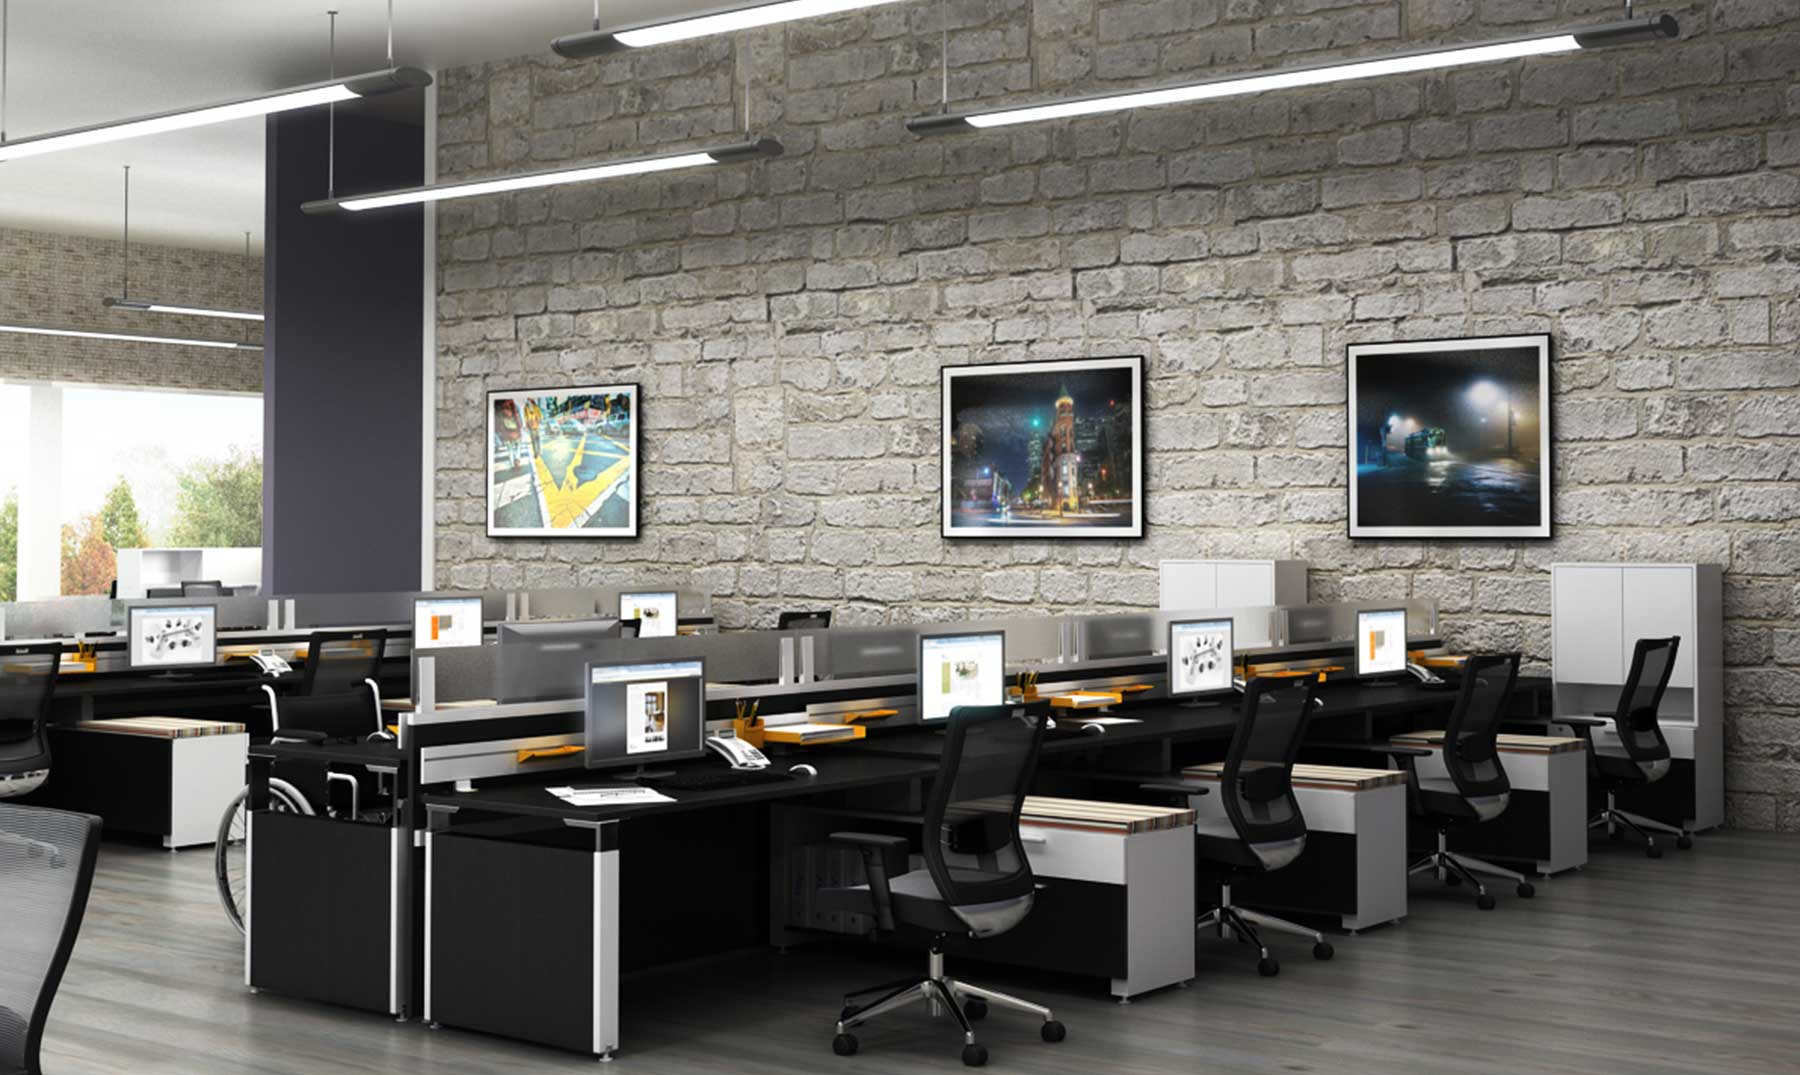 Best Open Floor Plan Designs 100 Frases De Trabajo Para Decorar La Oficina